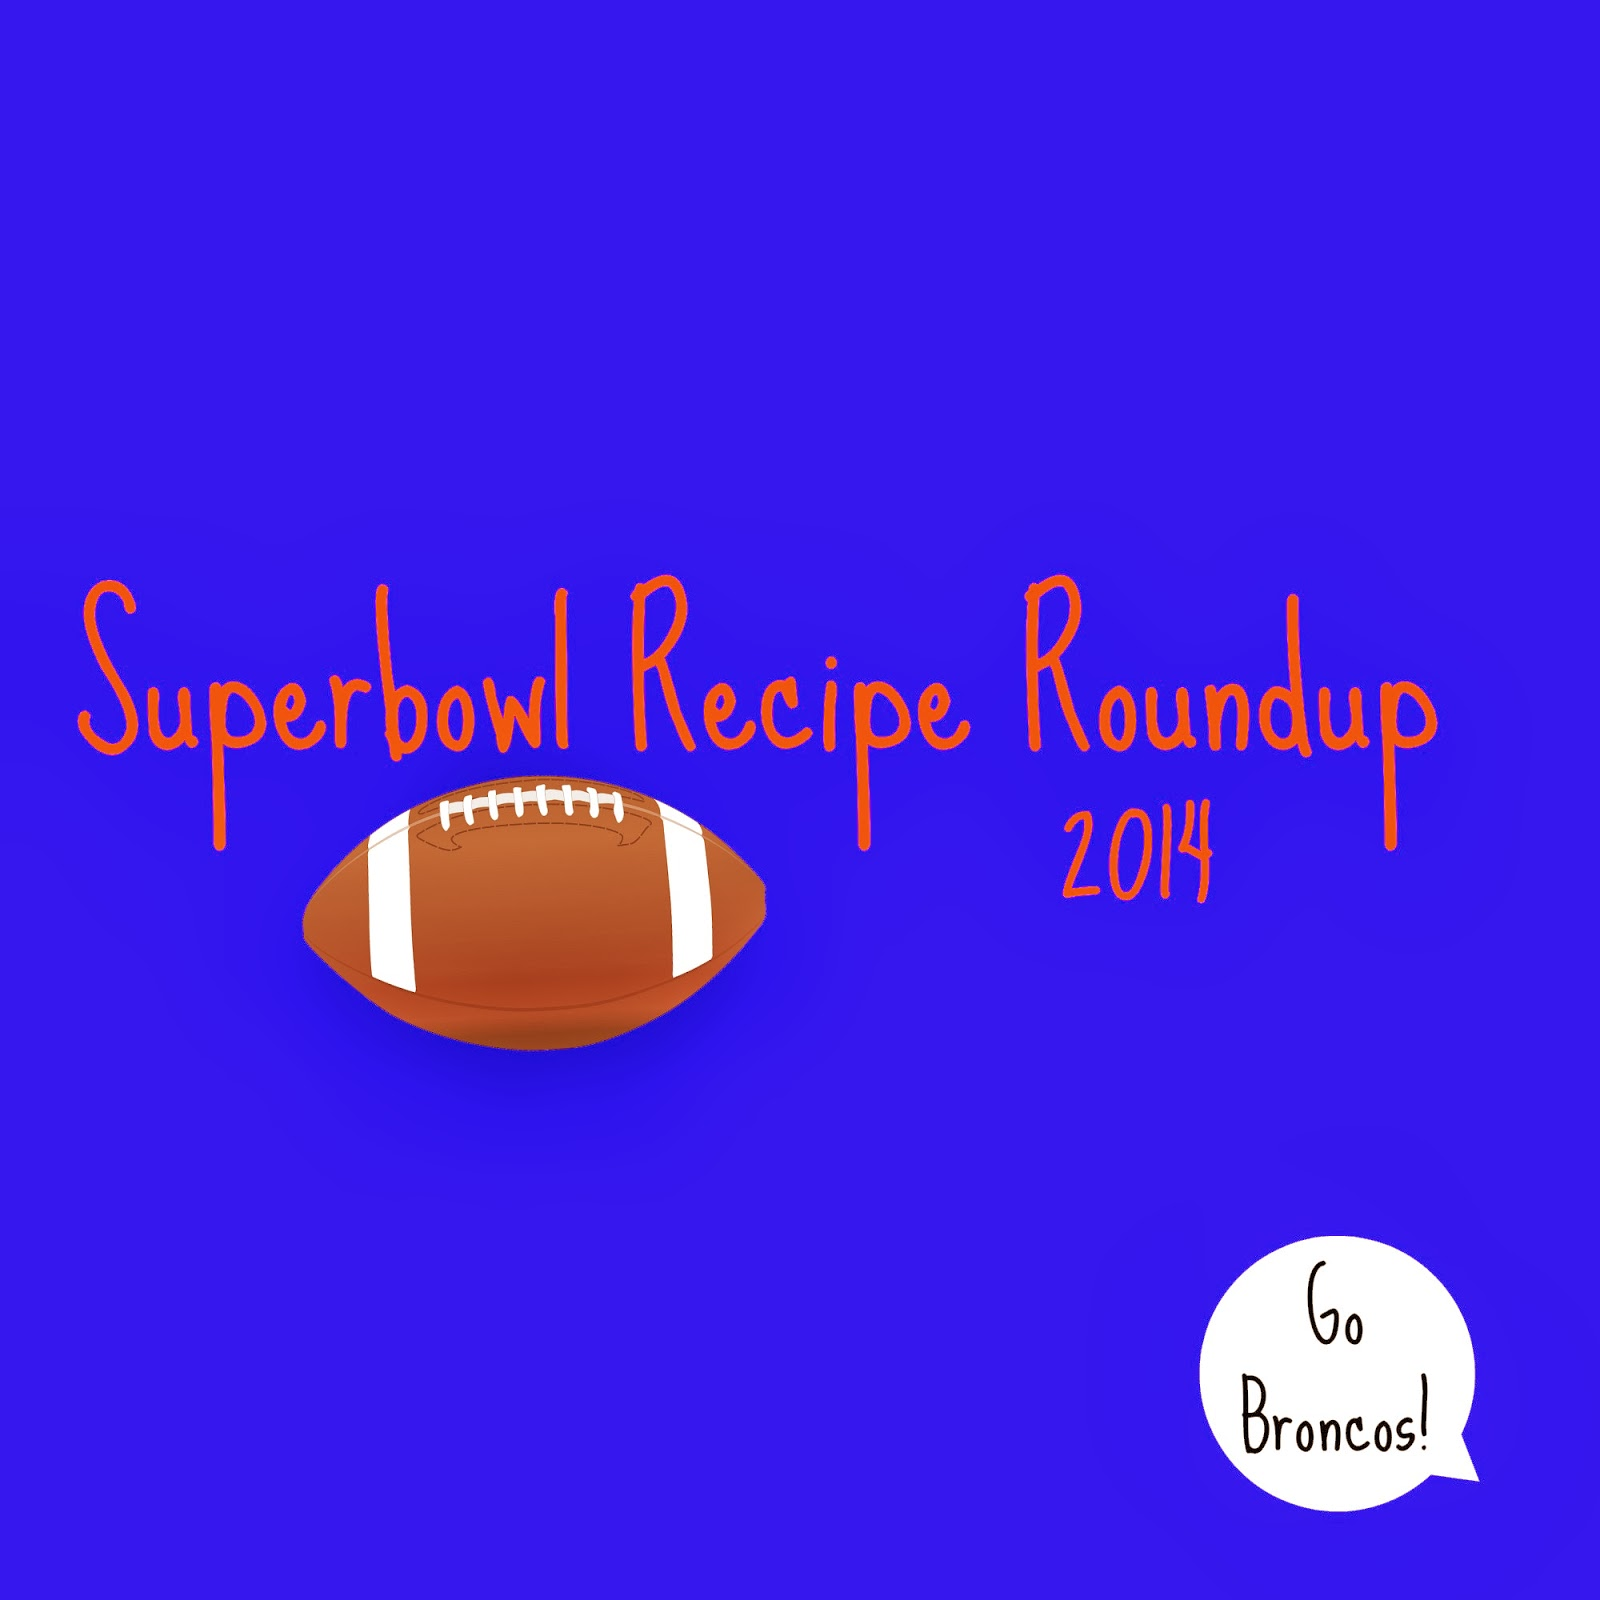 superbowl recipe roundup on katy's kitchen